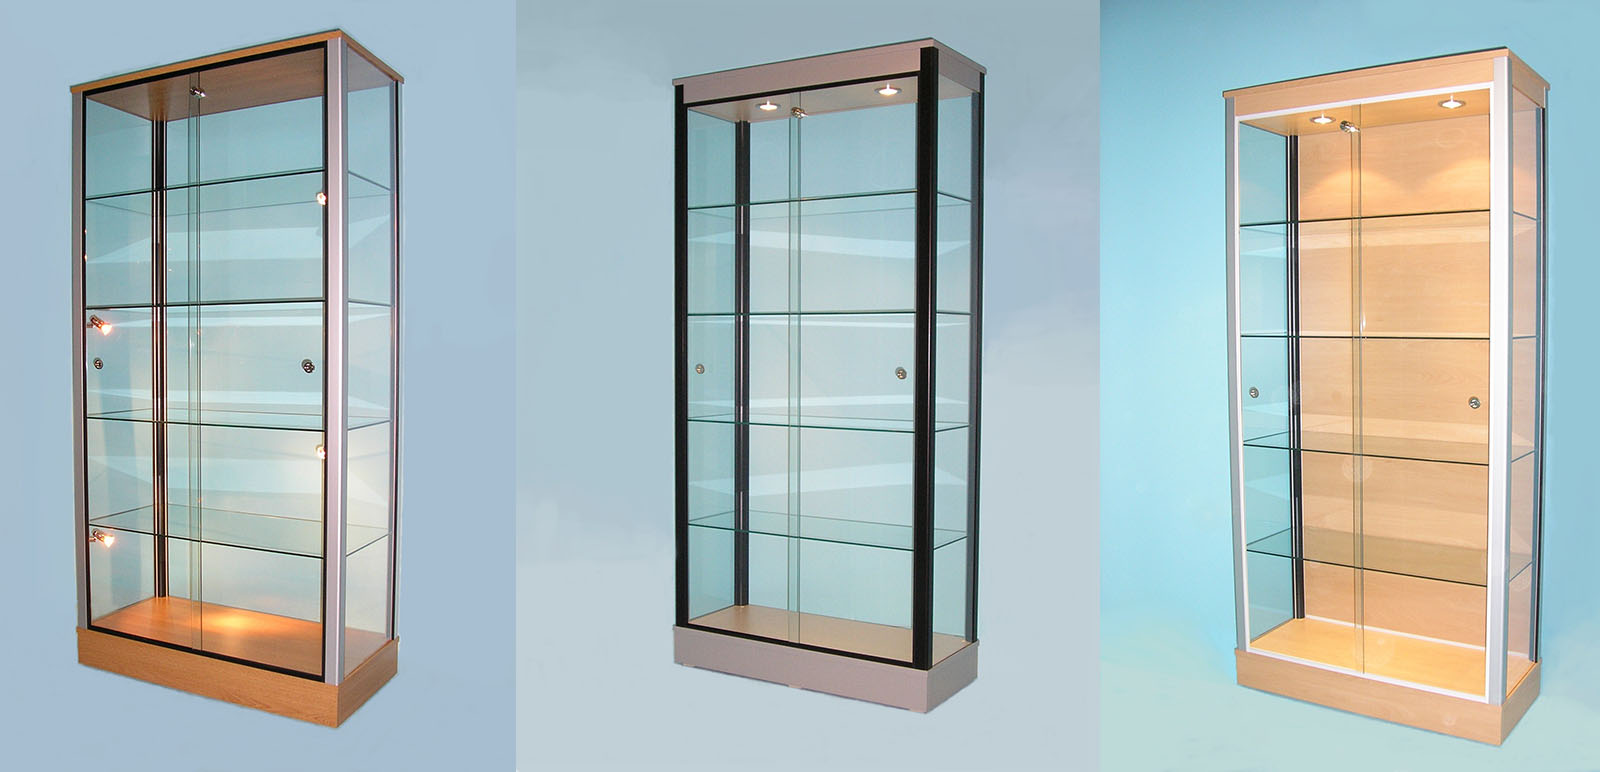 Designex Cabinets large glass display cabinets